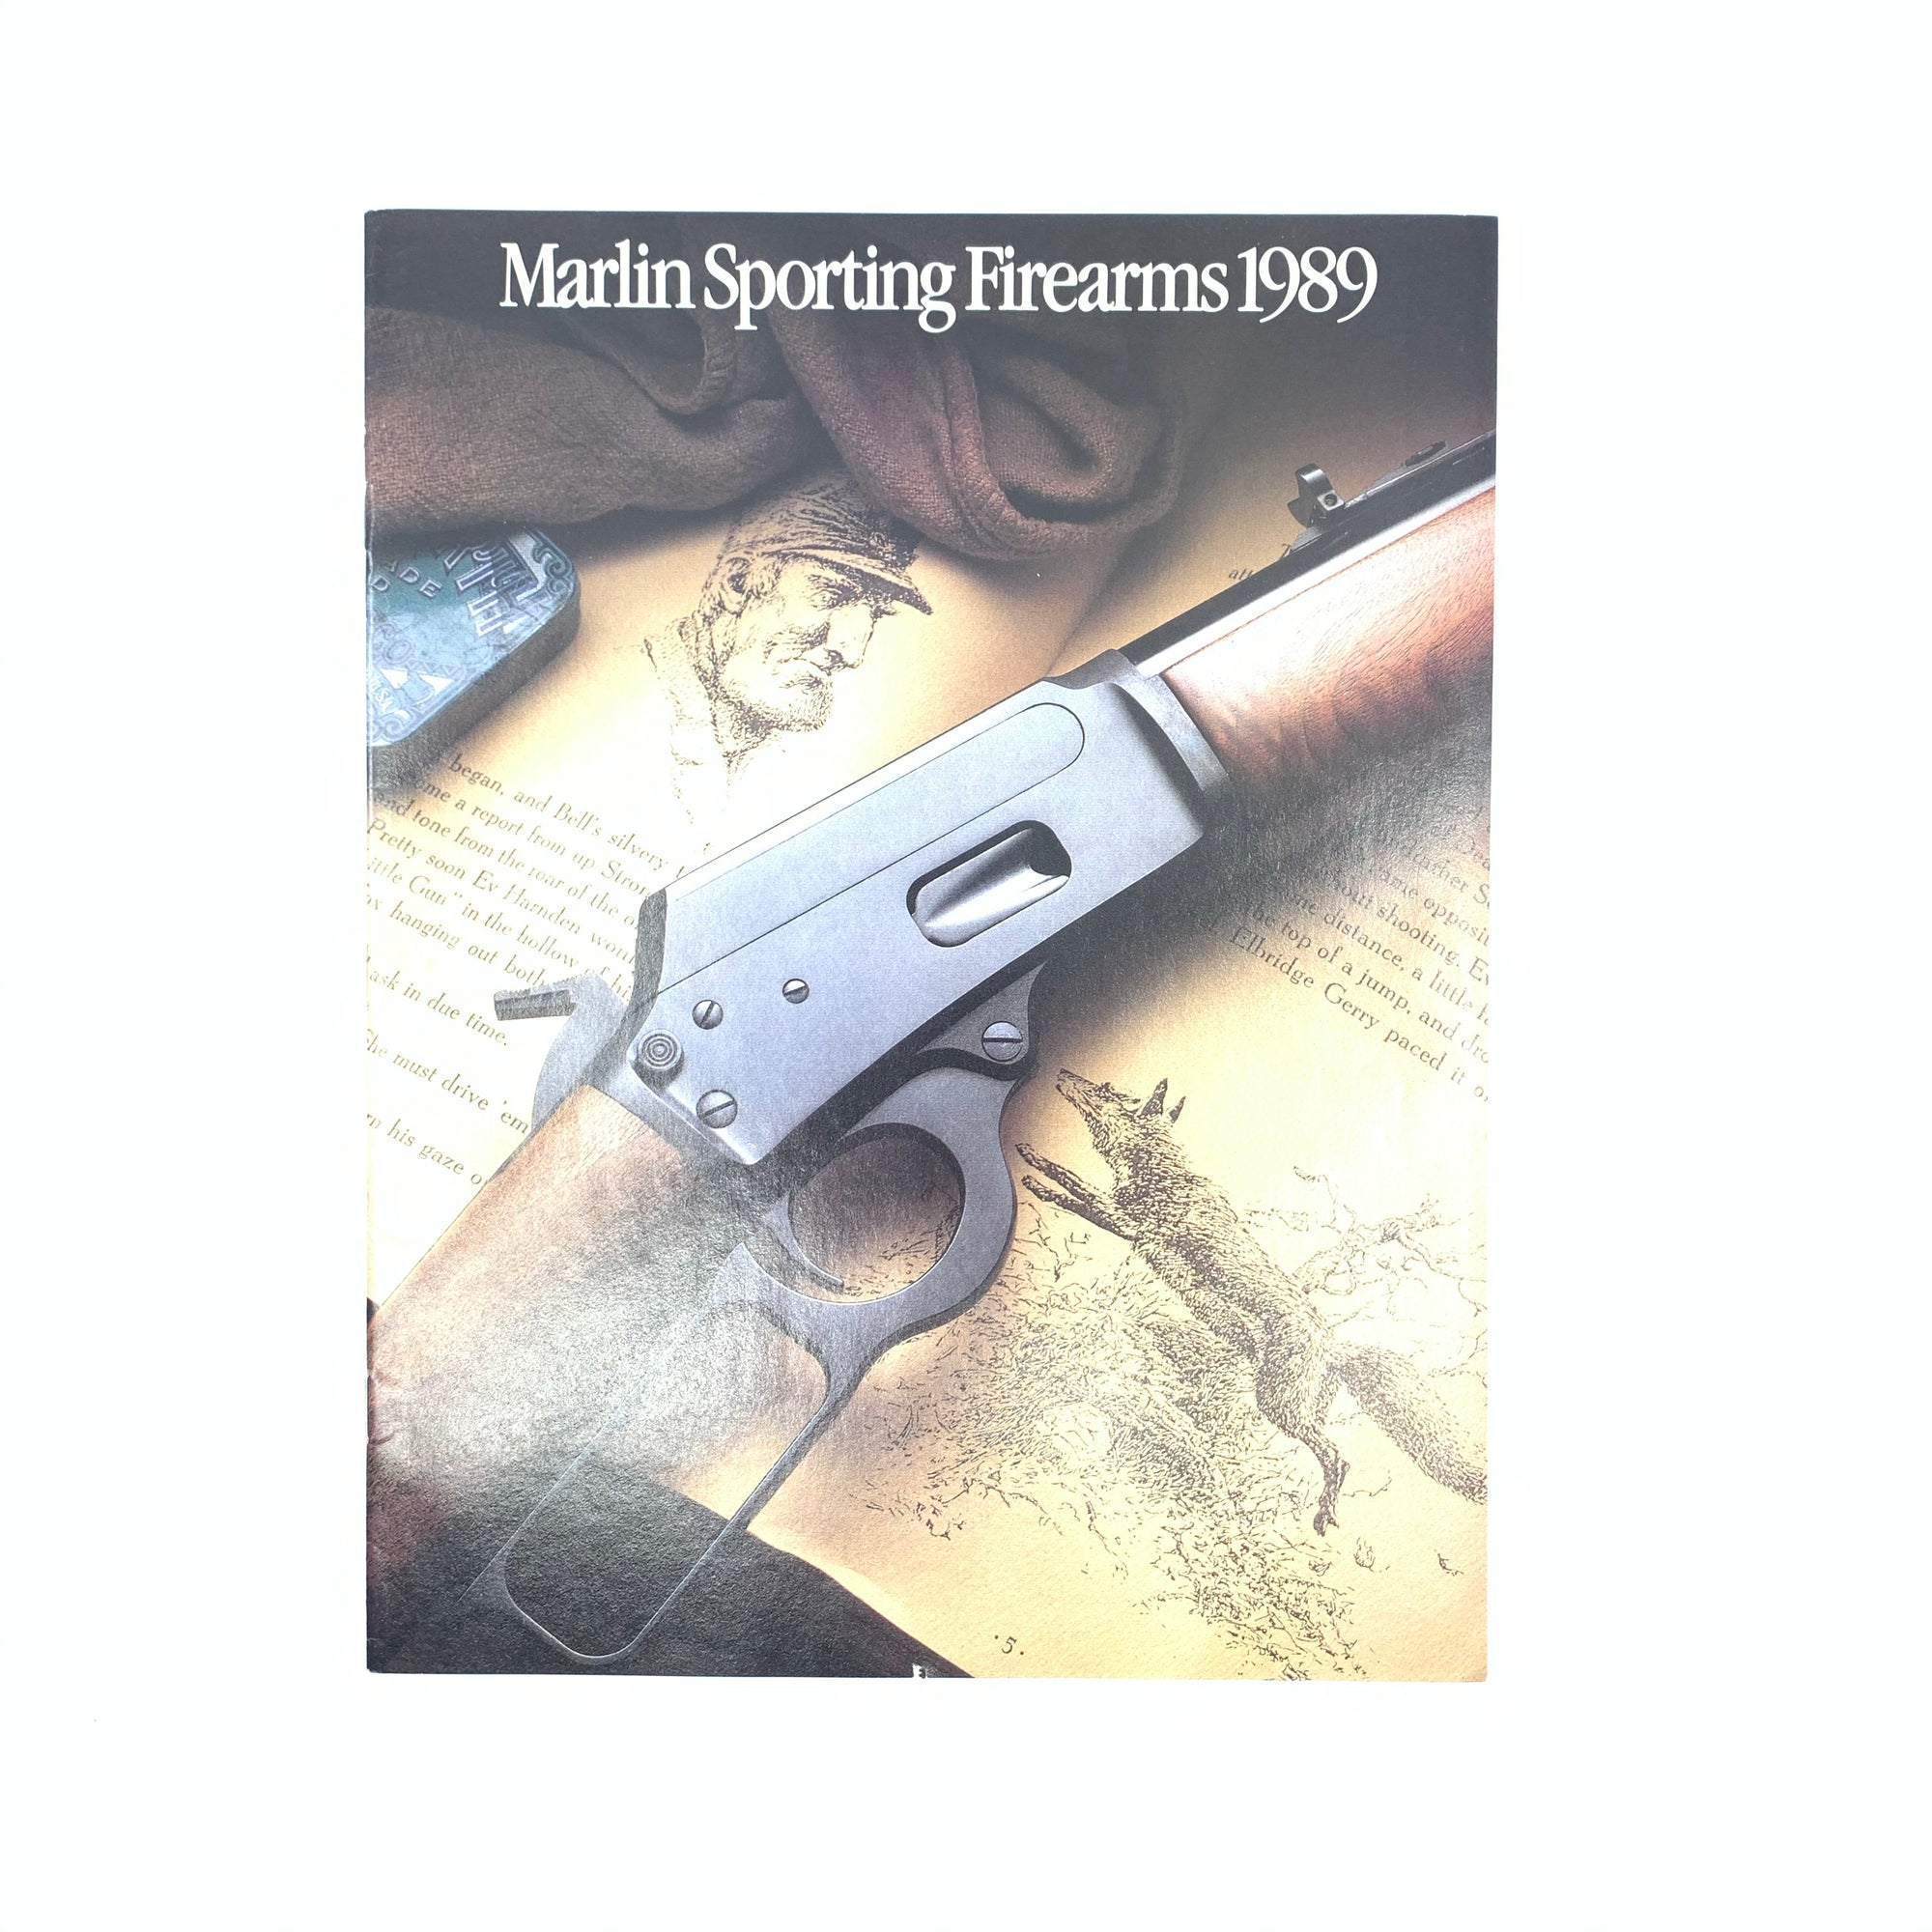 Marlin 1989 Sporting Firearms Catalogue